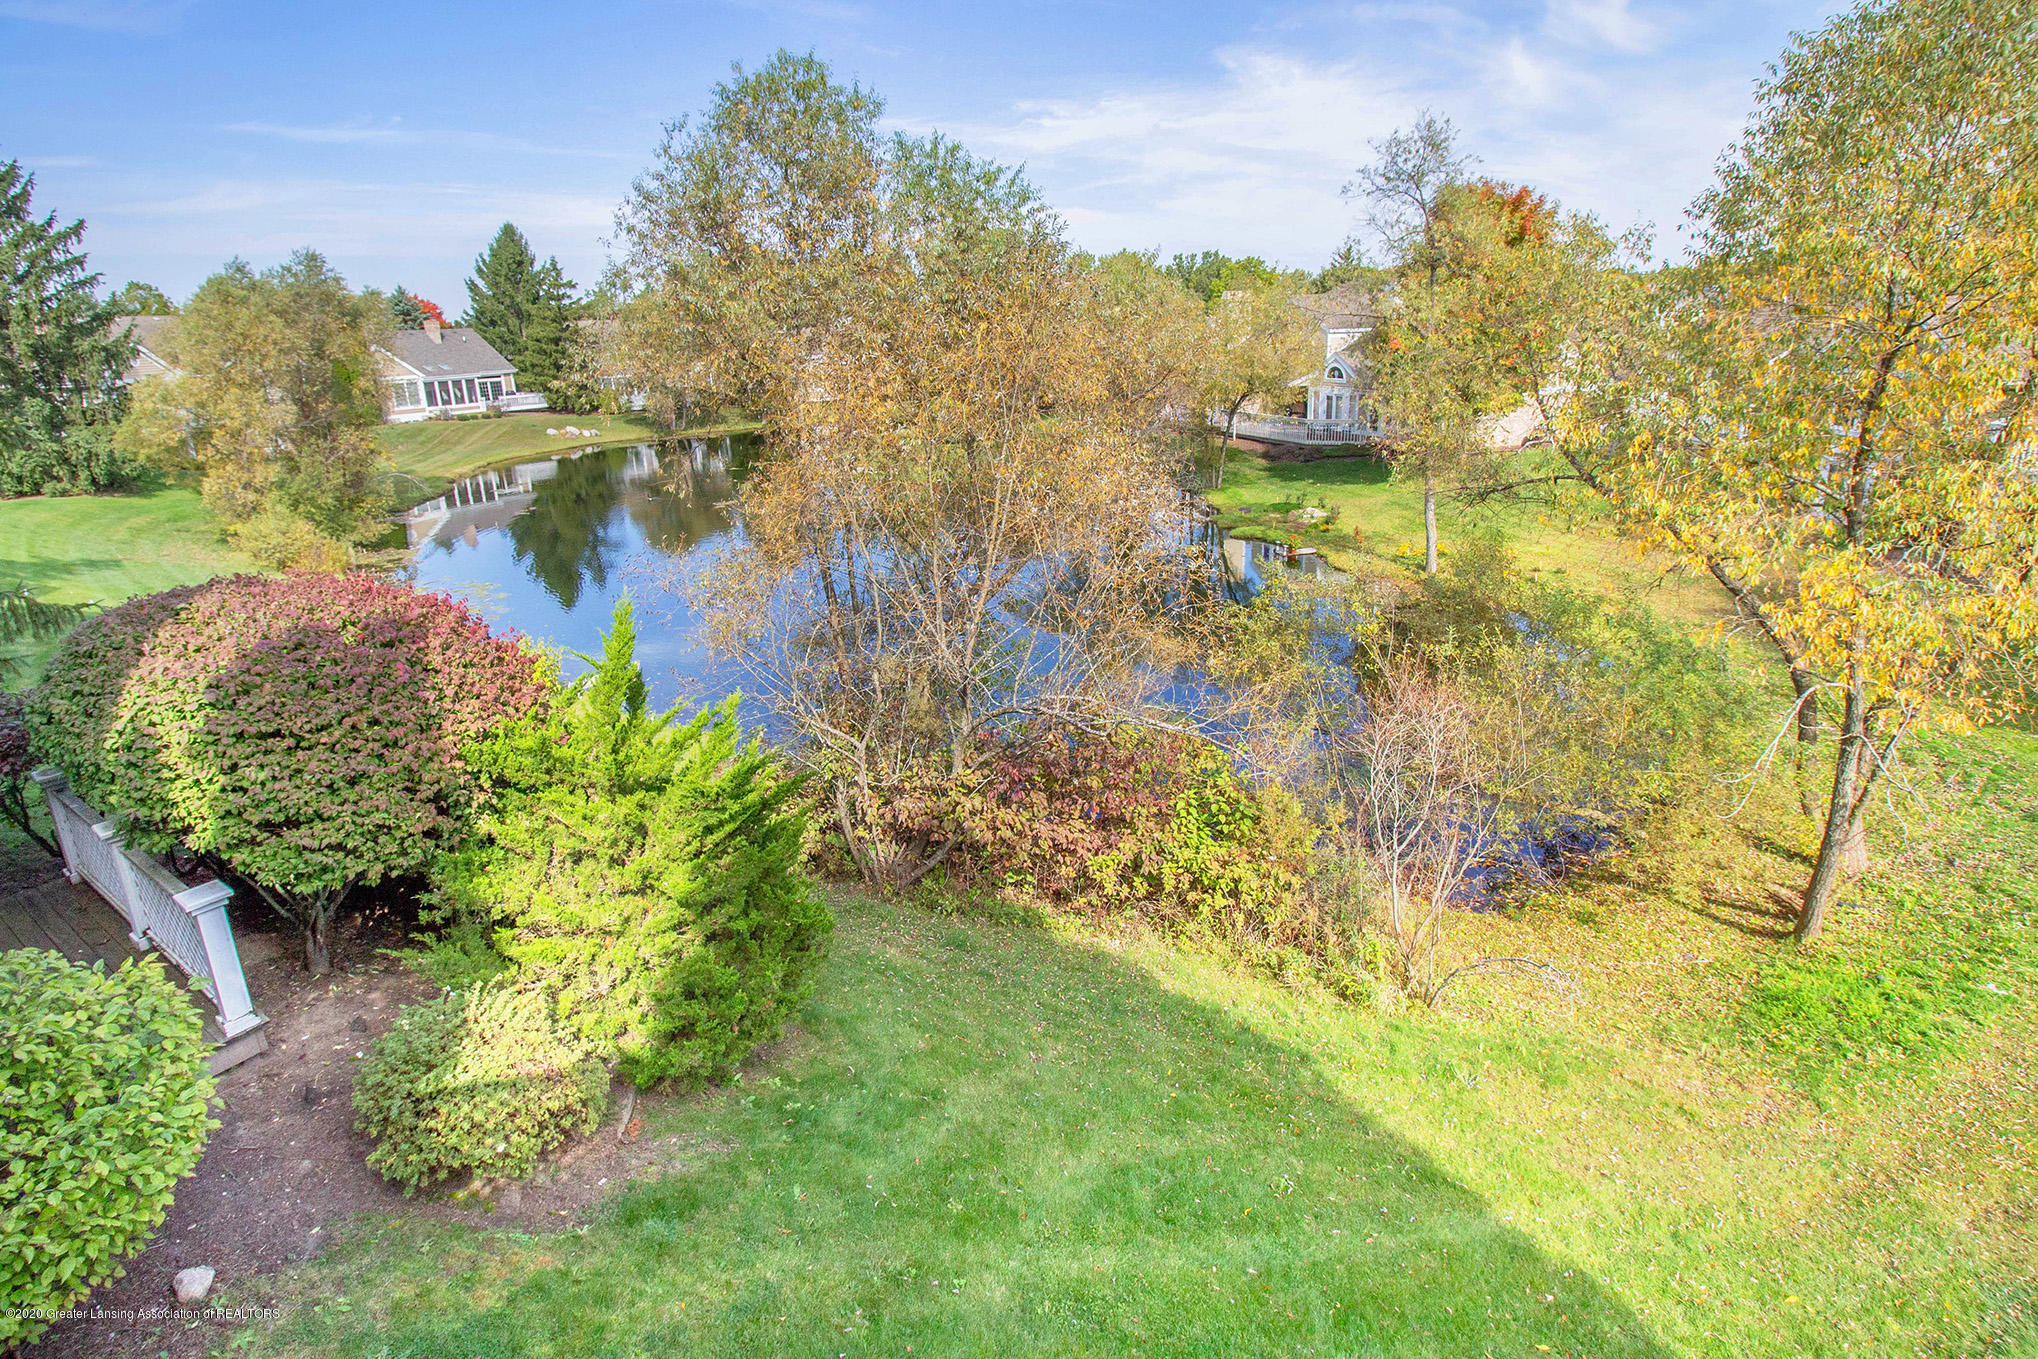 6182 W Golfridge Dr - View of Pond - 39